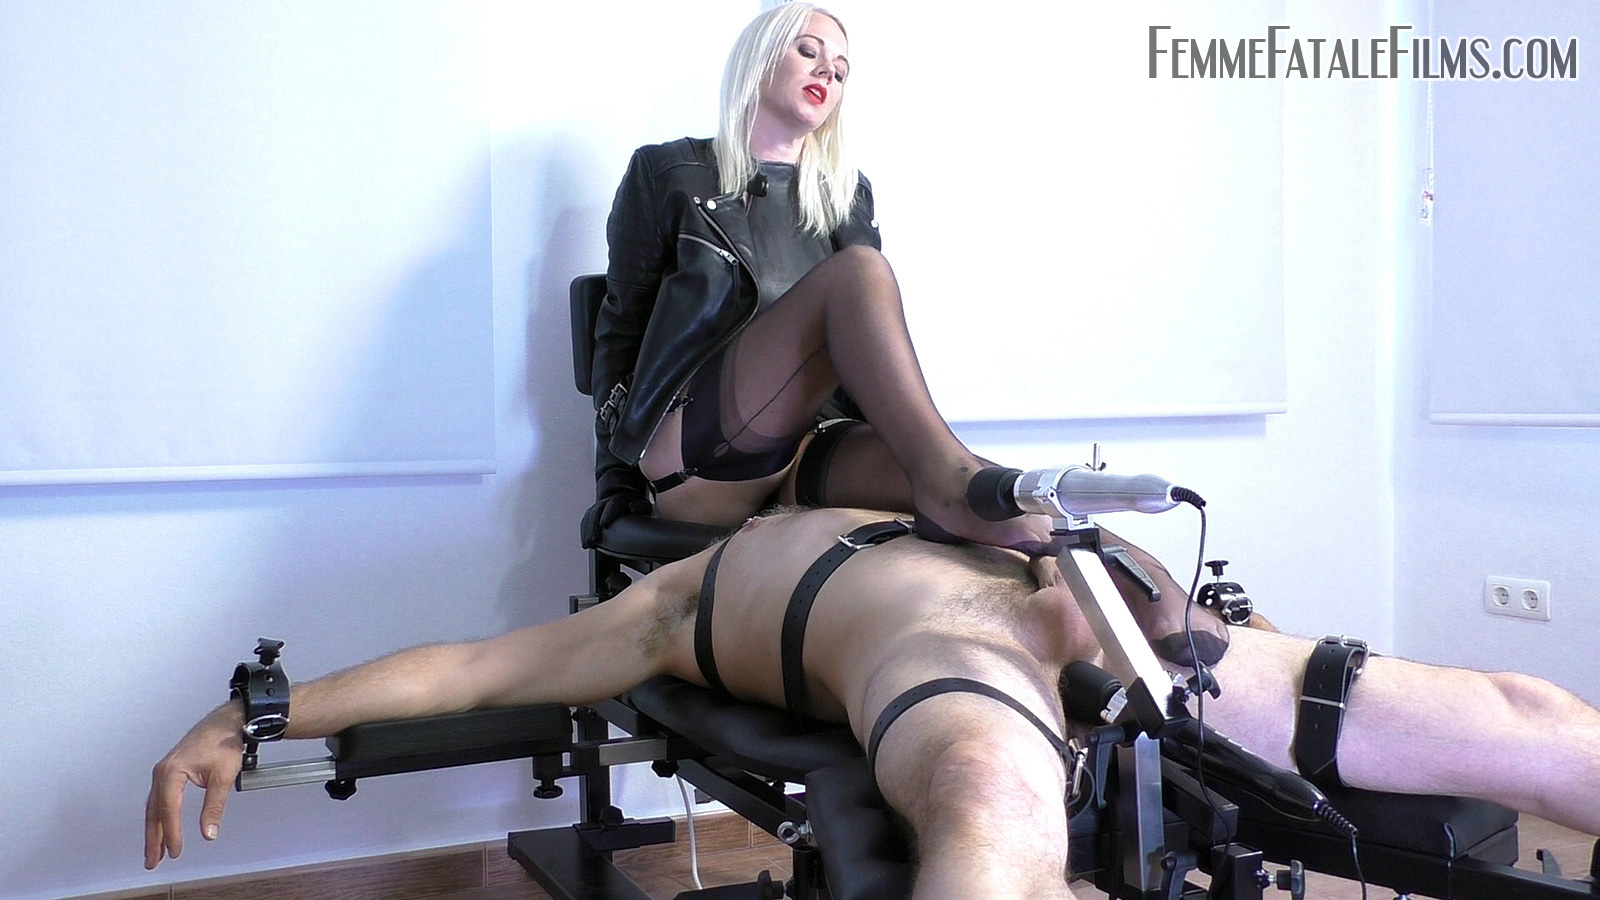 Featuring Divine Mistress Heather. I decided to allow my slave to have an orgasm release, so after strapping him down to my inescapable bondage table, filling his ass with an inflatable plug, clamping his head beneath my queening chair and then instructing him that he may only cum whilst his tongue was buried deep inside my asshole, I set about making his orgasm entirely out of his control, but solely in mine. The balloon plug was made that much more intense against his prostate with the use of an industrial strength vibrator, pushing and vibrating him hard on his asshole and another vibrator shaking at the head of his cock. With all of this going on and my permanent smothering and grinding of his face with my cunt and asshole, it wasn't long before he exploded his orgasm and another controlling imprint was successfully engraved on this slave's brain!